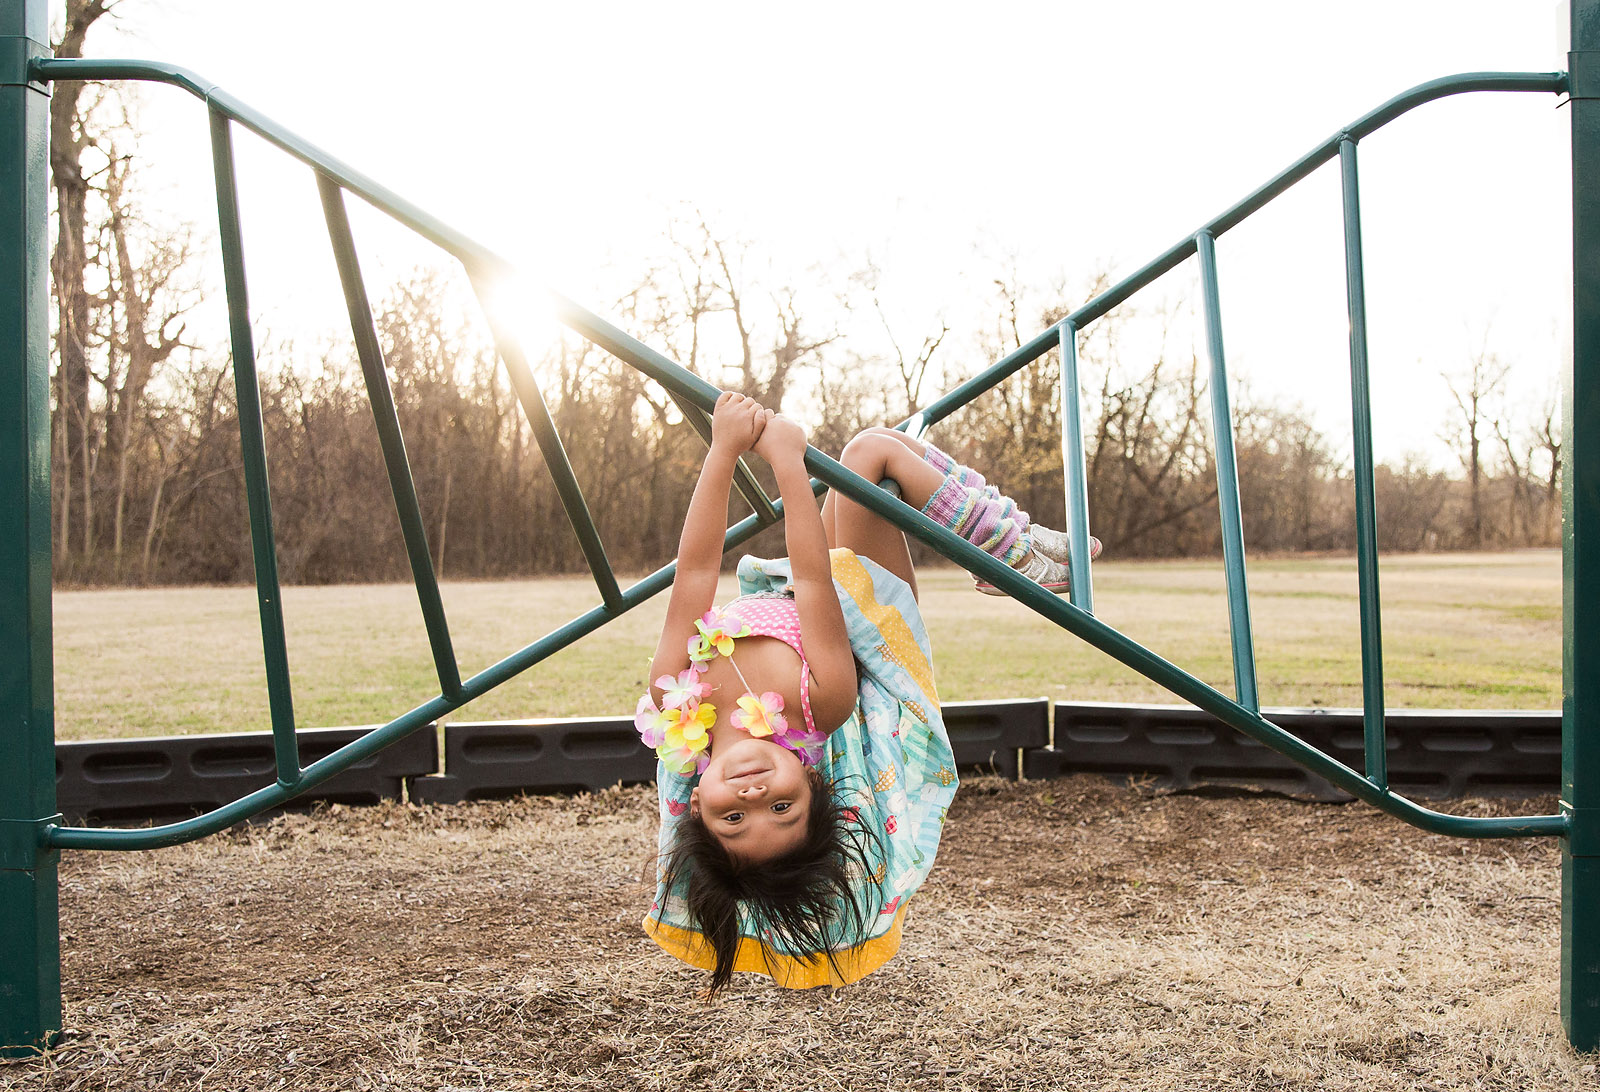 If your spring is anything like mine, the kids are dragging you to the park every afternoon to take advantage of the warmer weather. Because we are there so often, I've challenged myself to find new ways to capture my kids as they swing, balance, run and hang at their favorite place.